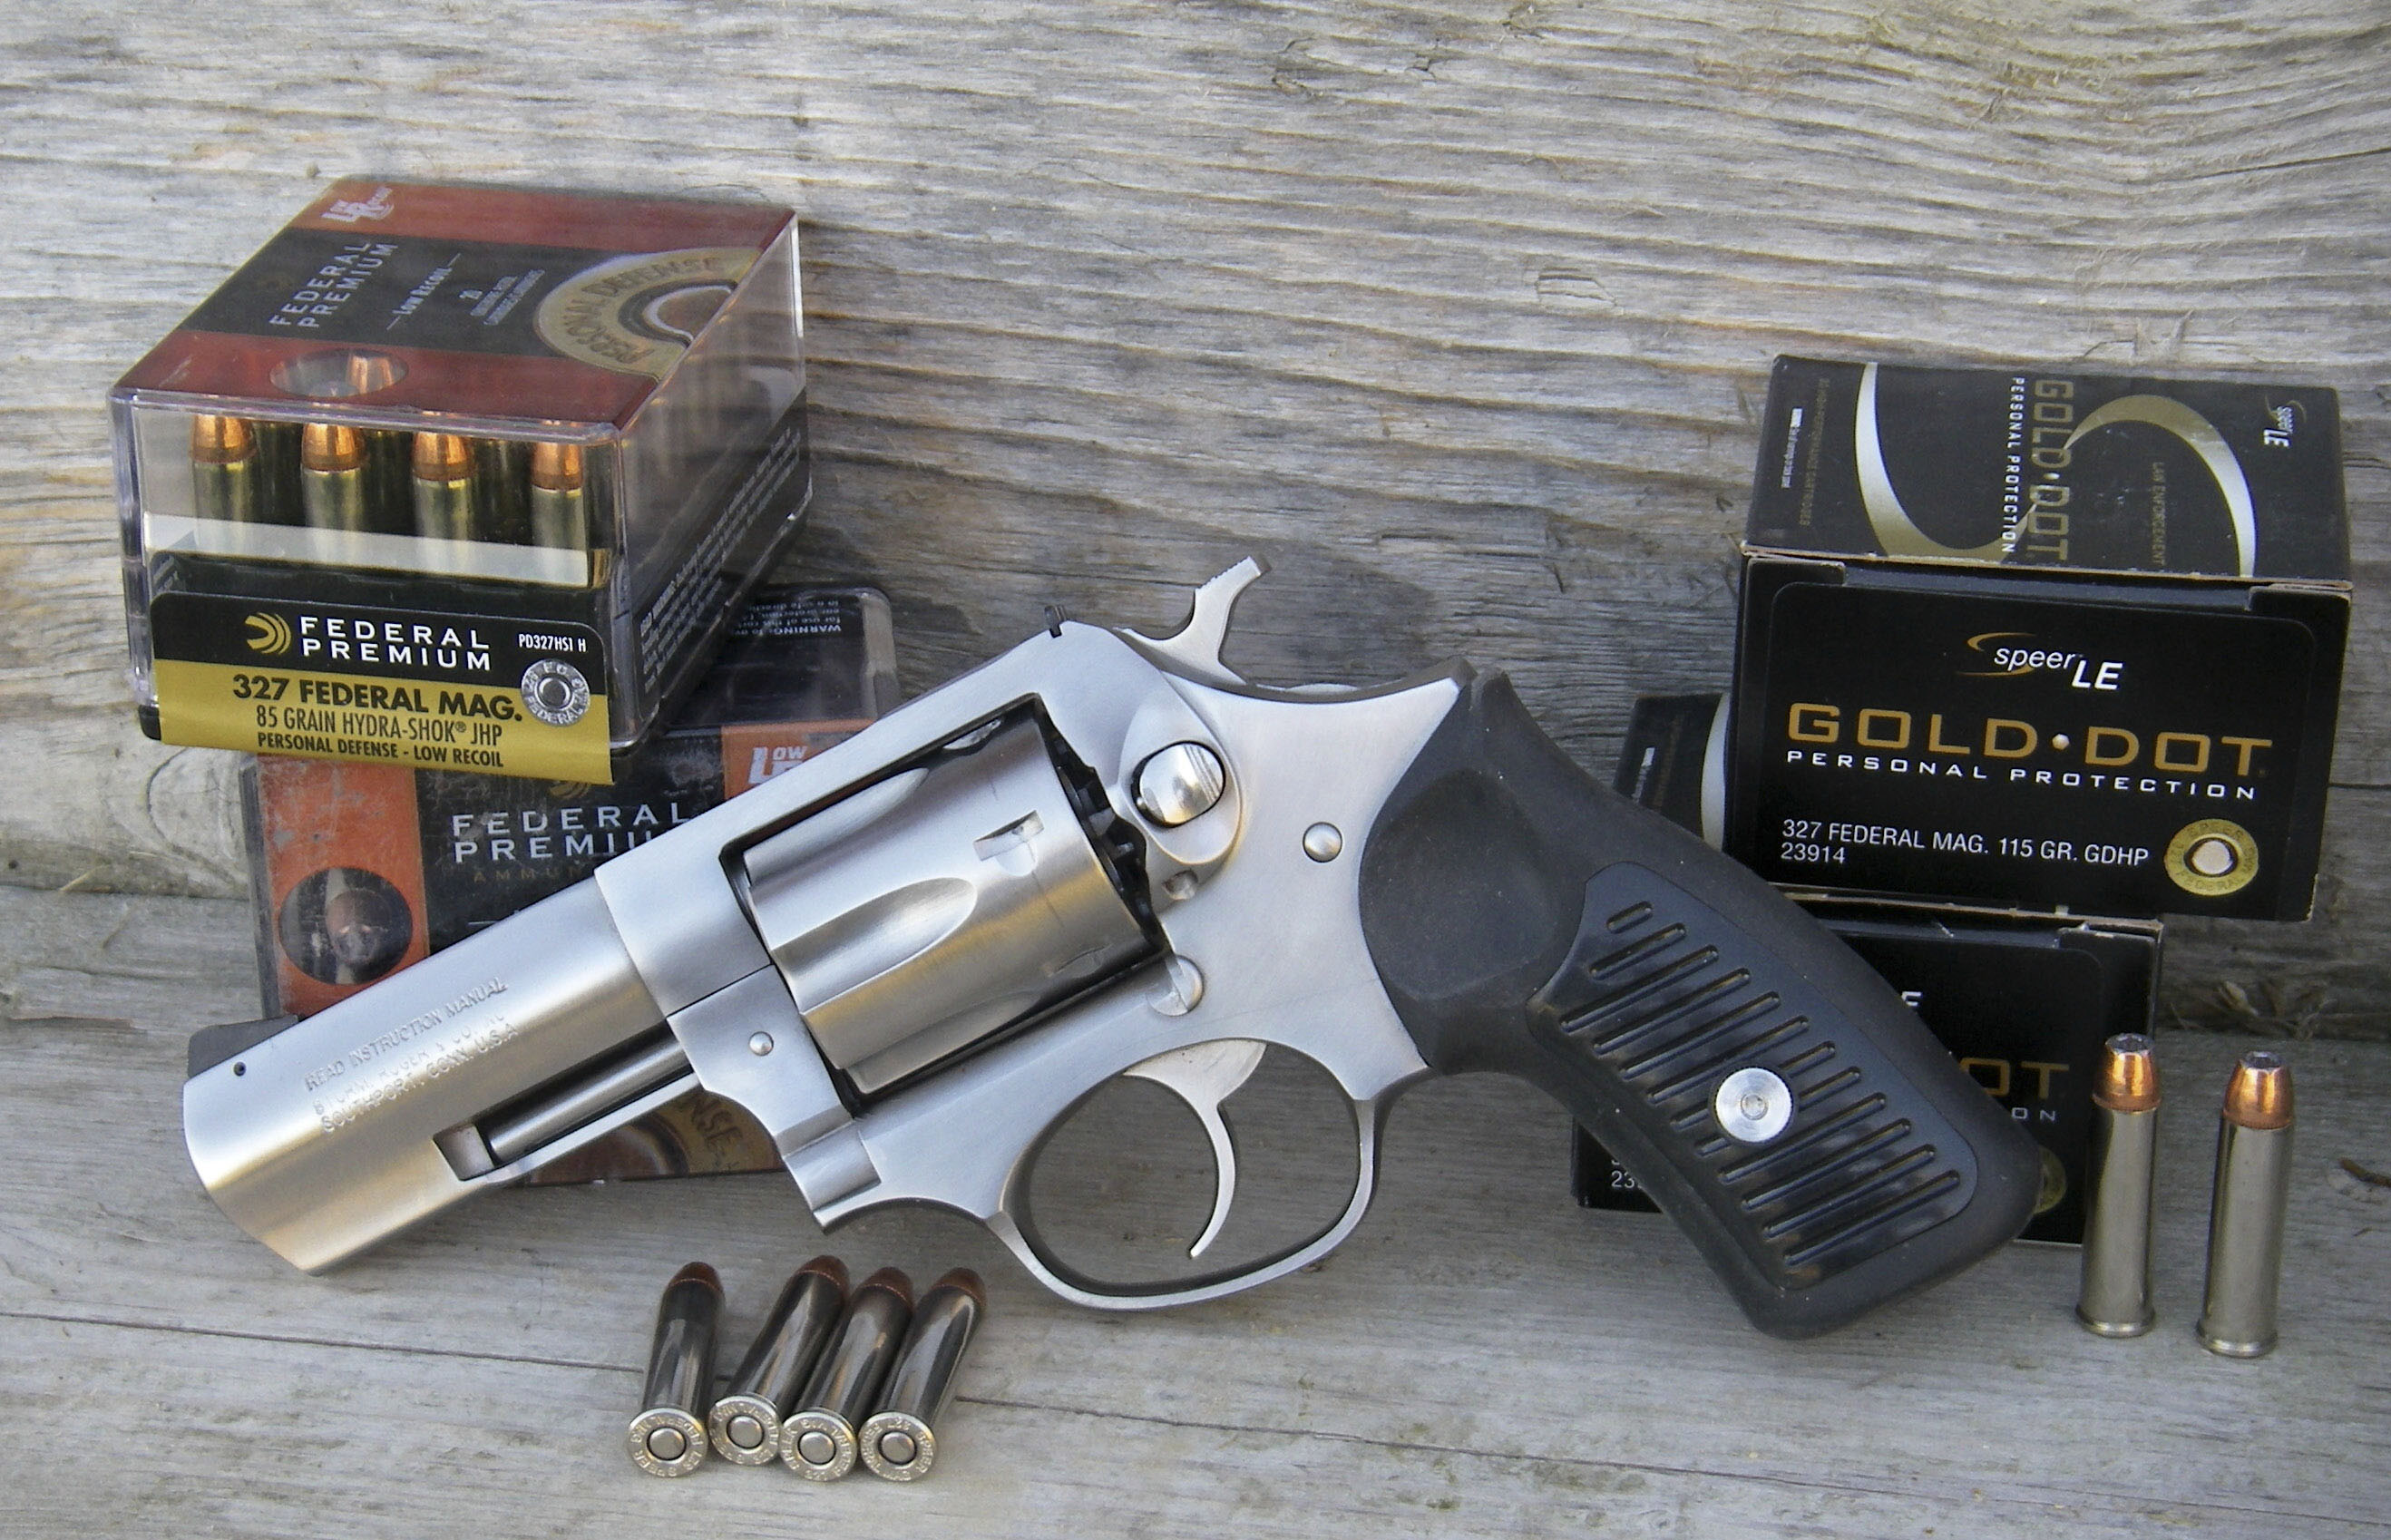 The .327 Federal Magnum was introduced in a Ruger SP101 six-shot revolver.